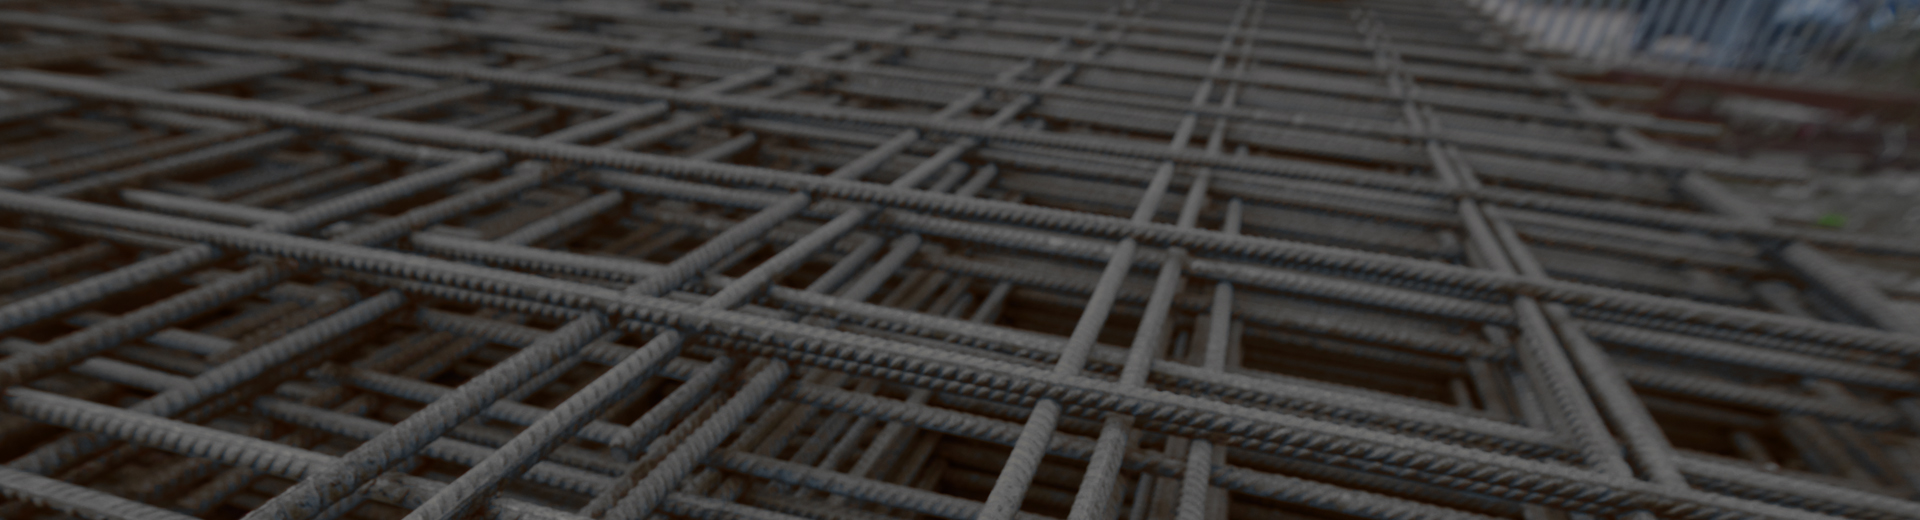 Reinforcing Steel Mesh Panels